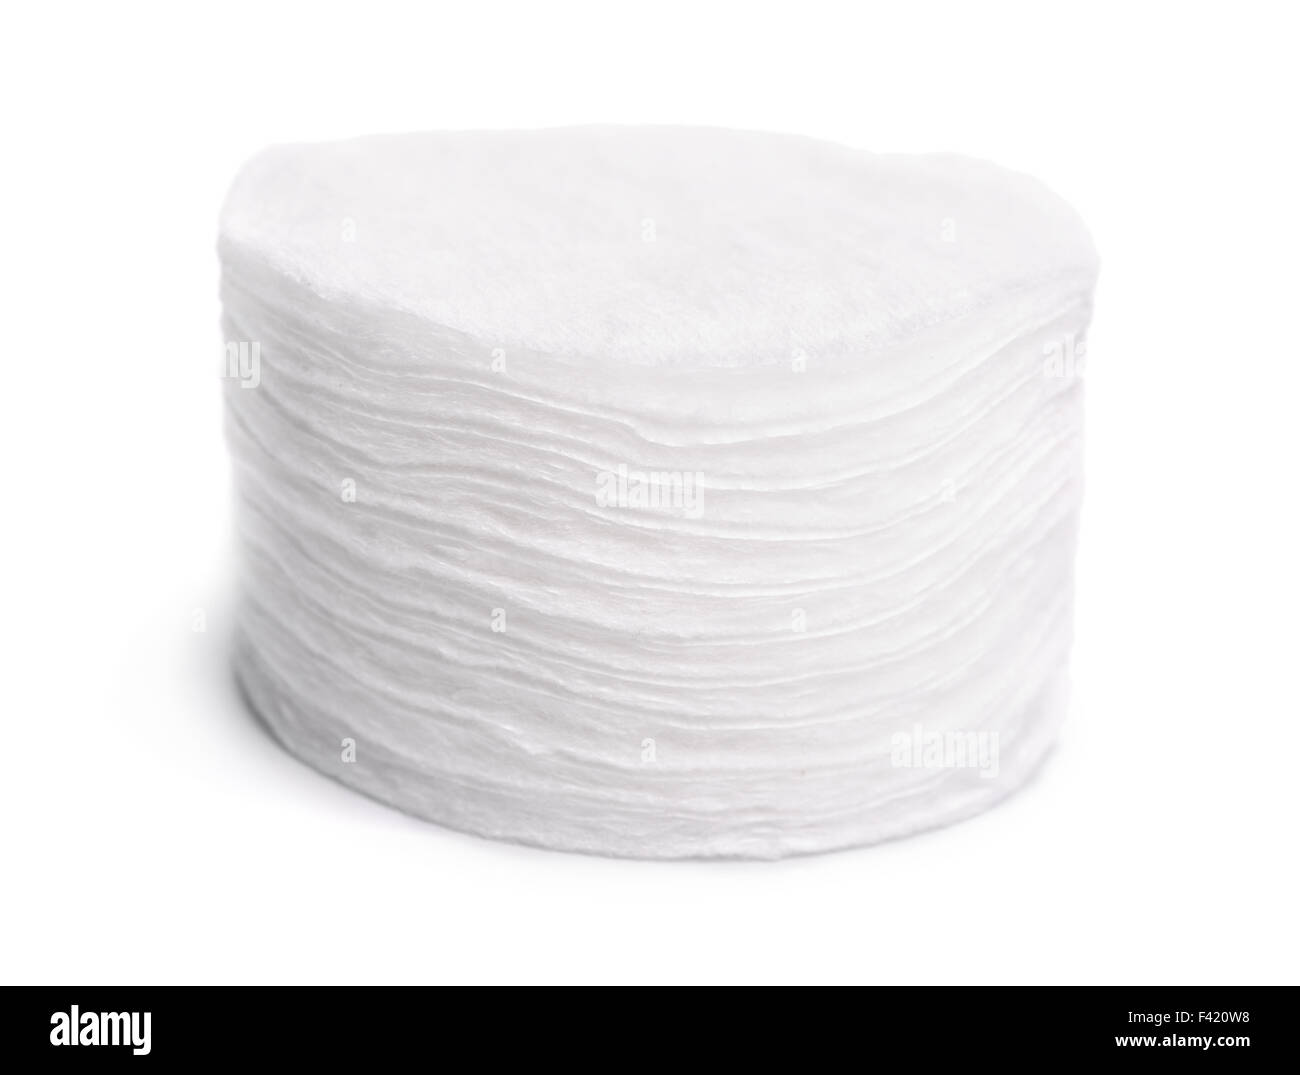 Cotton disks isolated on white - Stock Image